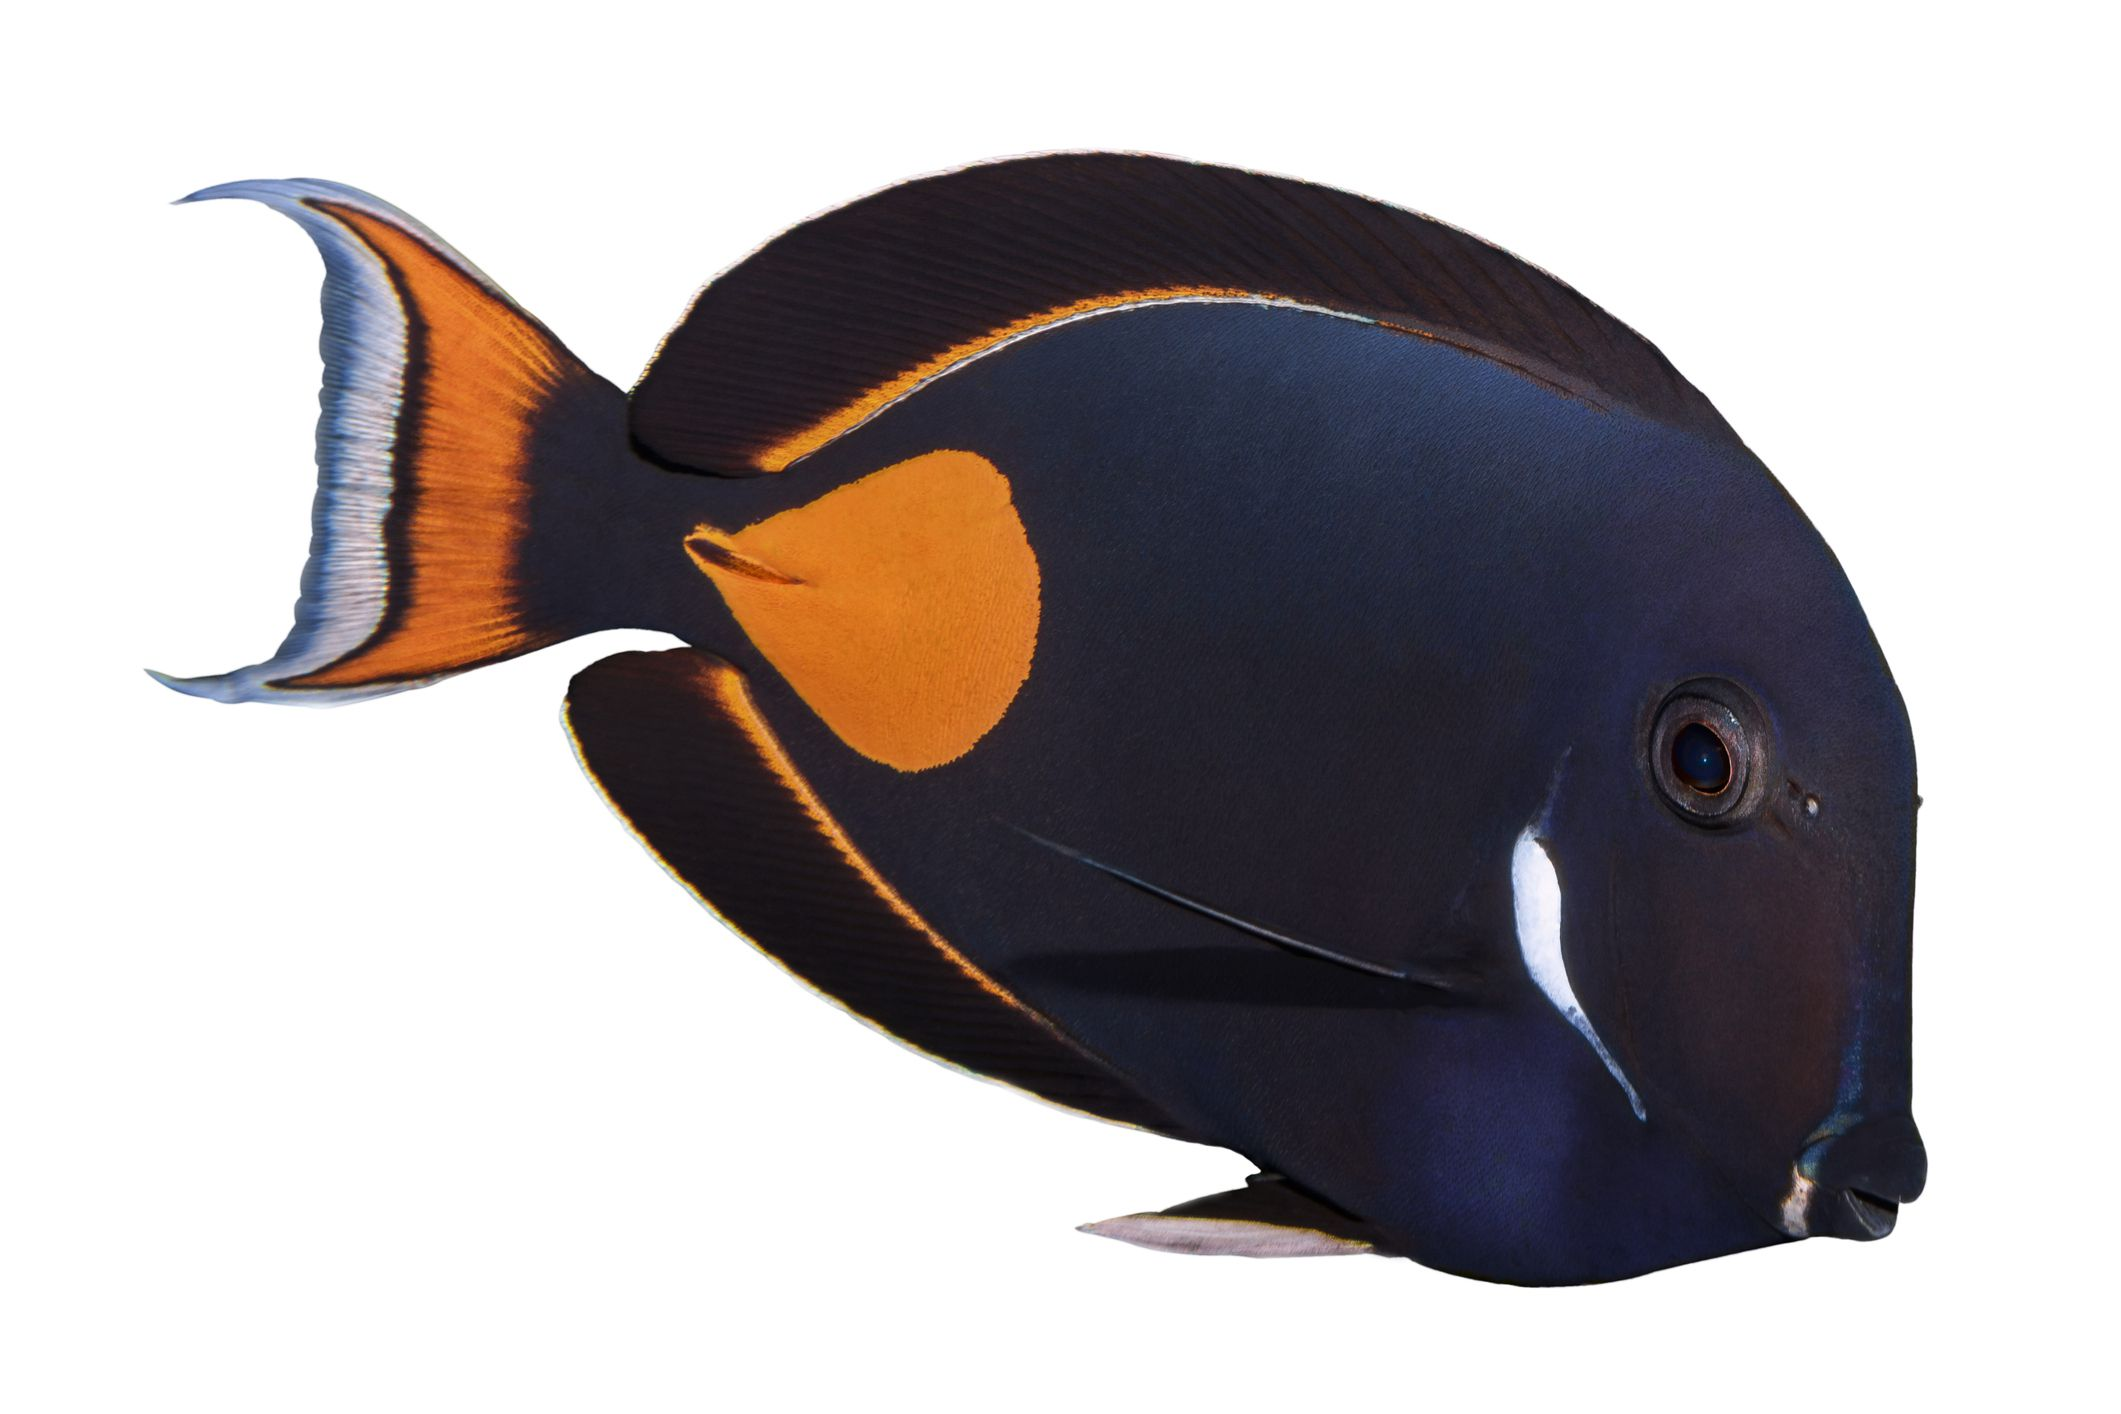 Tang and Surgeonfish Profiles